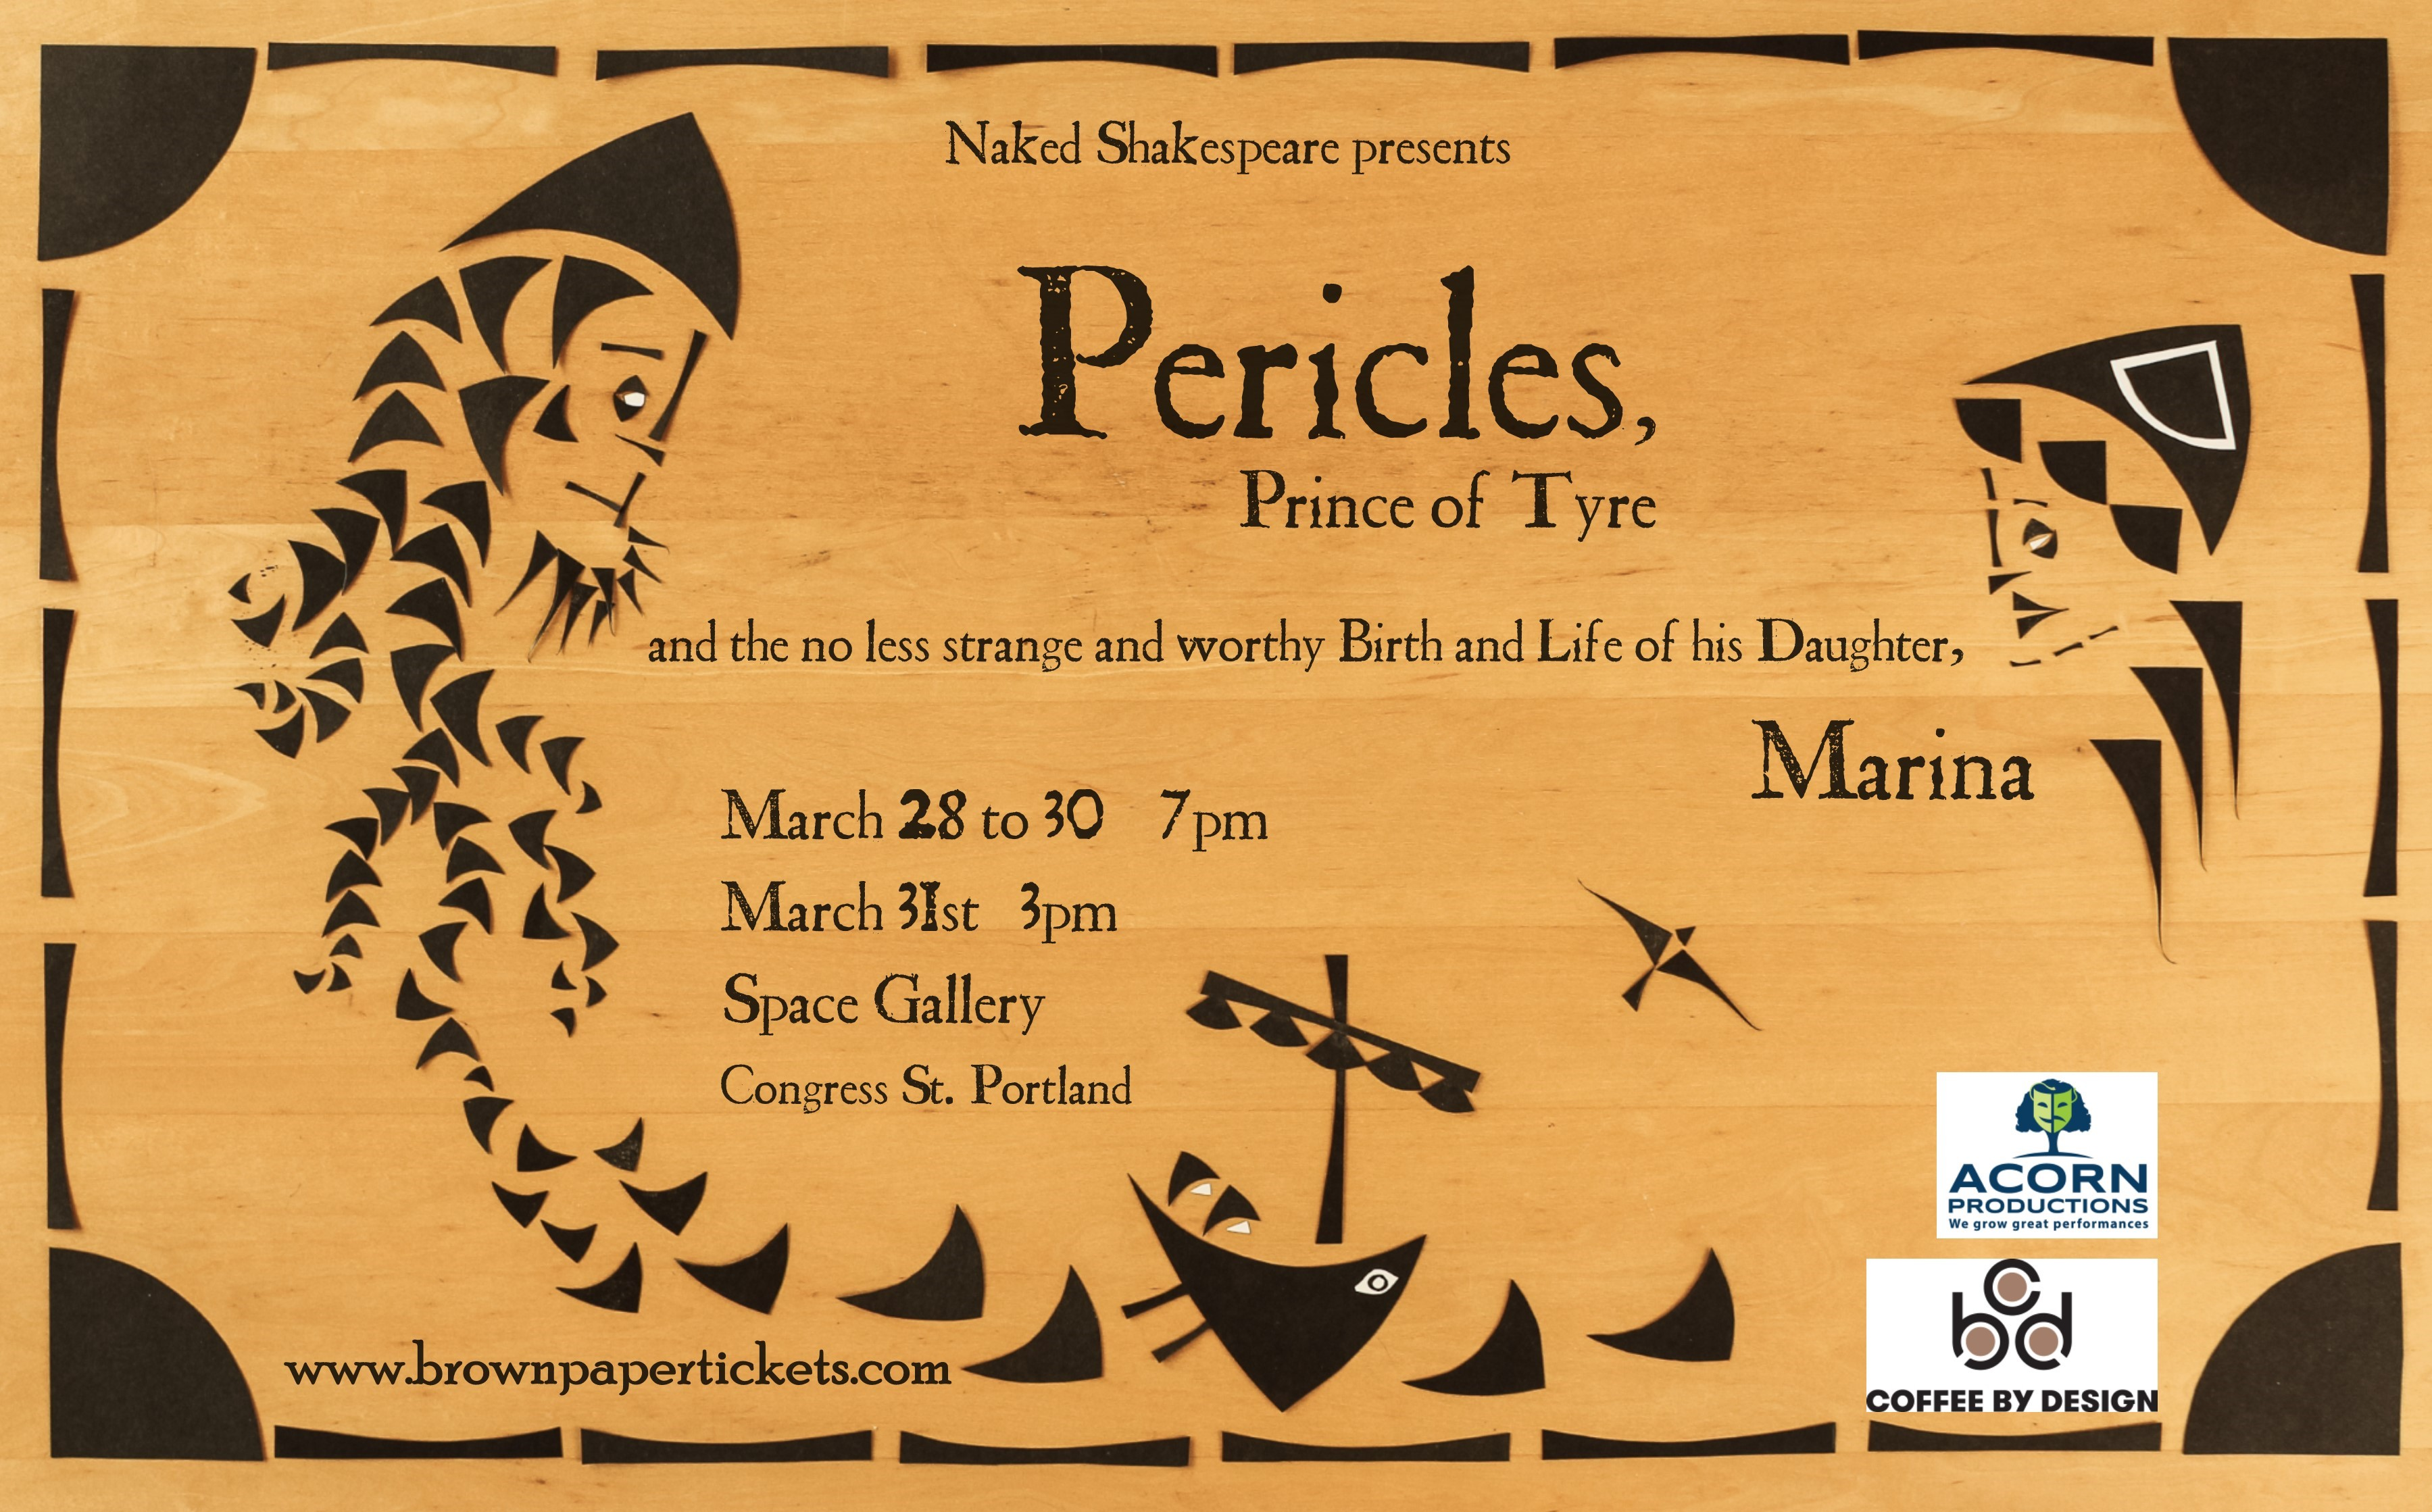 Naked Shakespeare Pericles Poster